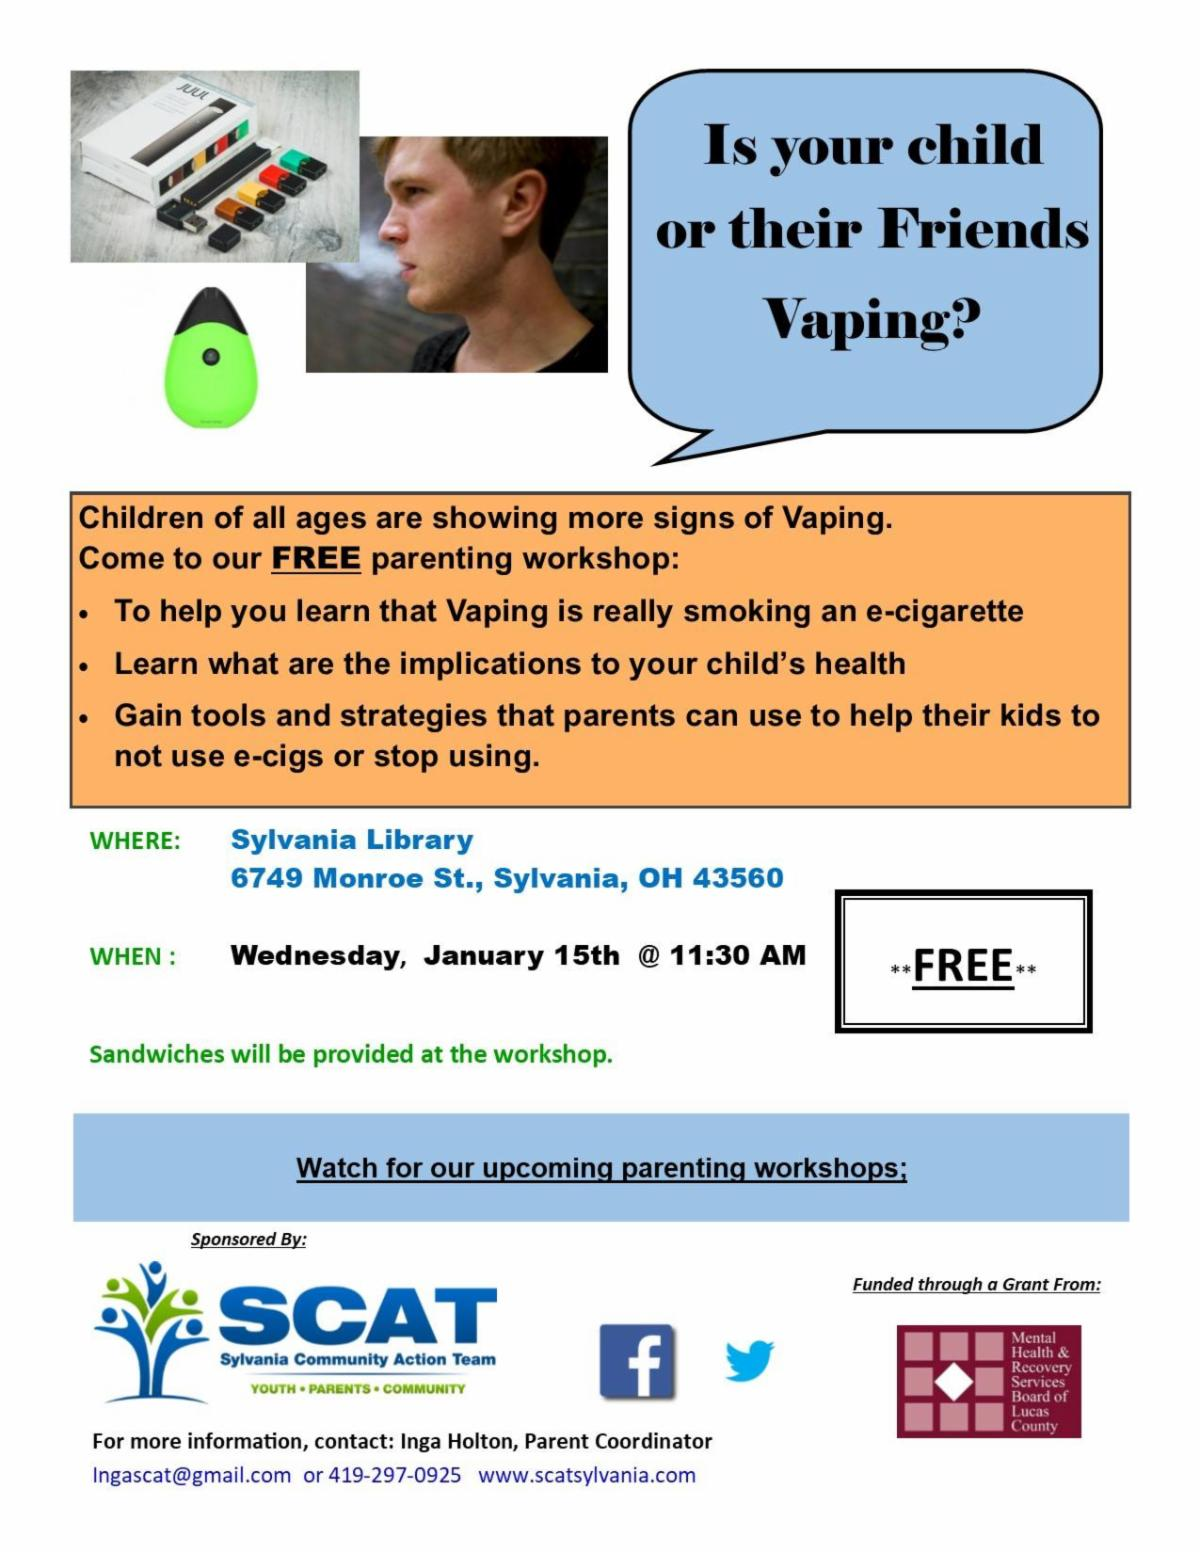 Is your child vaping? Presentation by SCAT